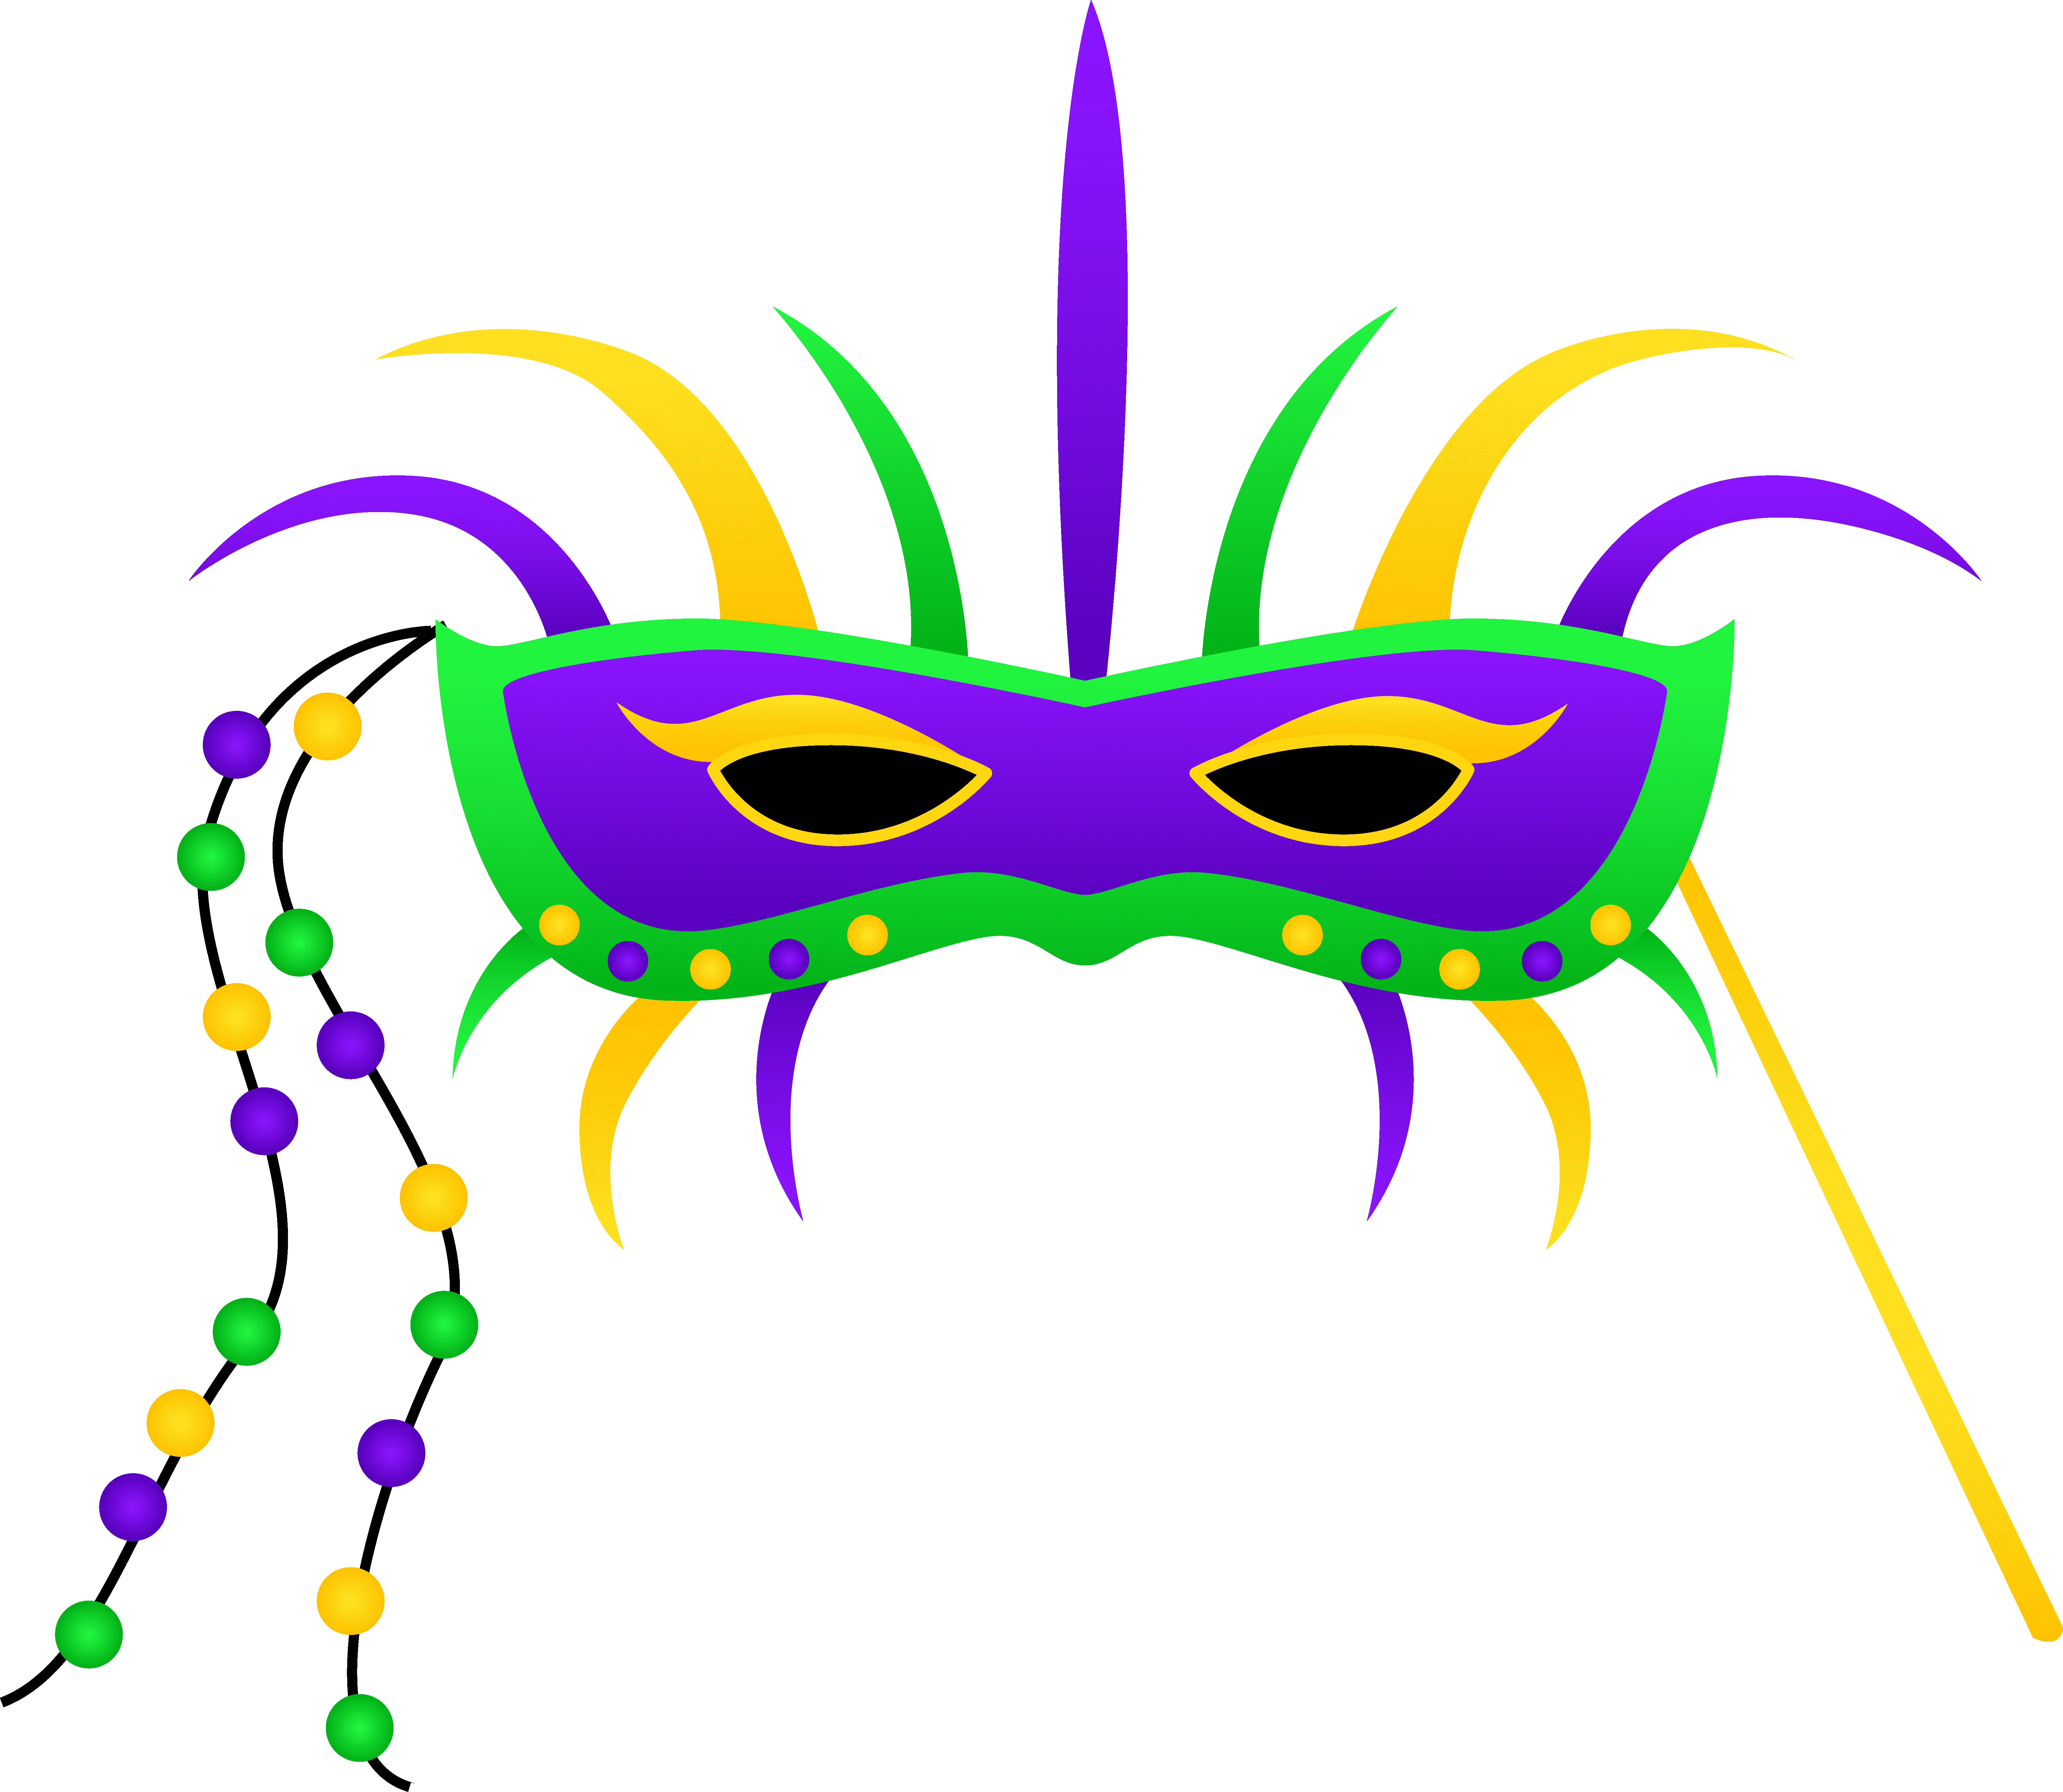 A colorful Mardi Gras mask